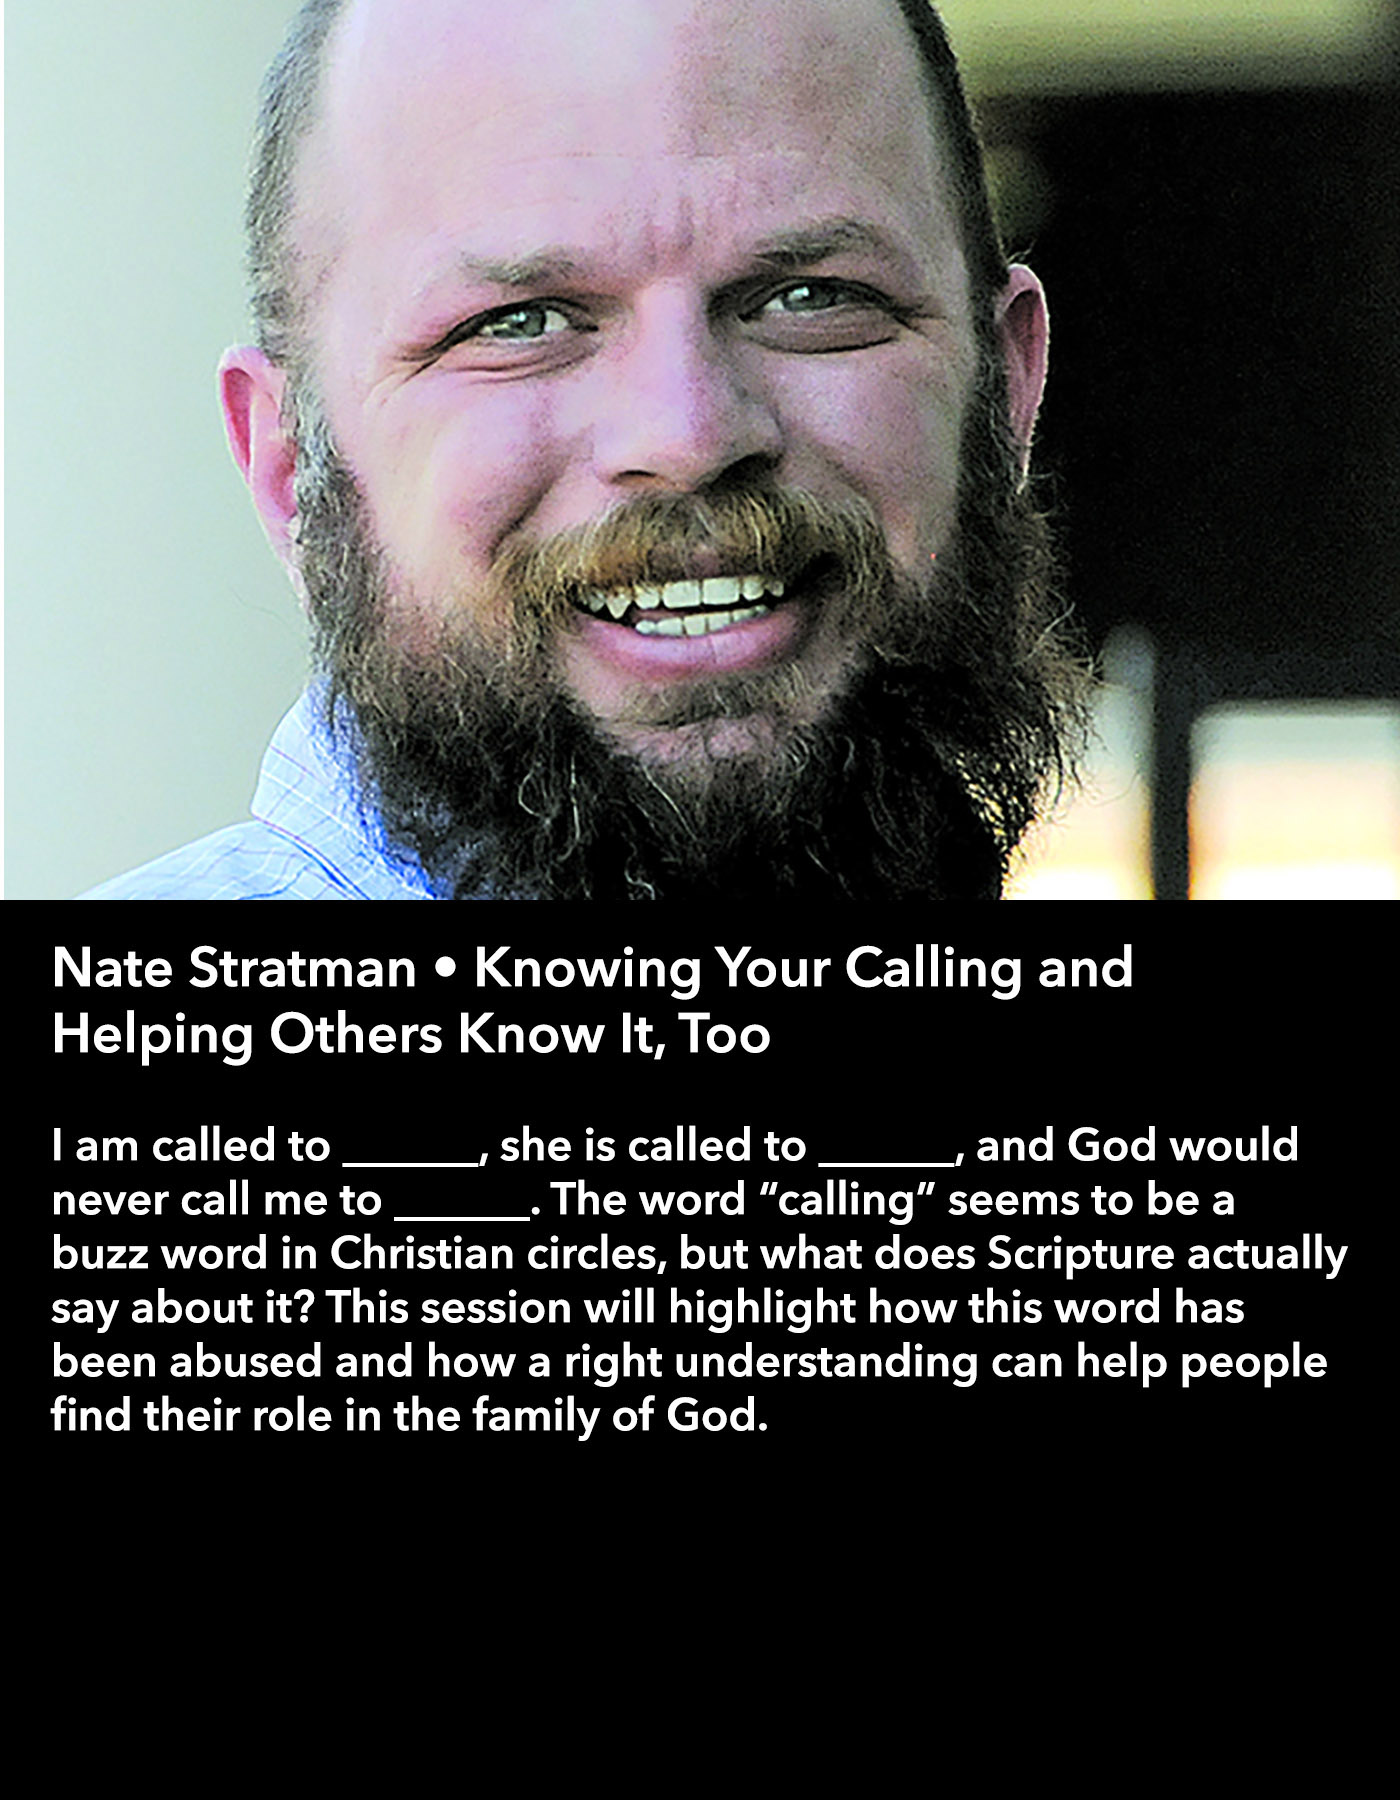 Nate Stratman • Knowing Your Calling and Helping Others Know It Too • Friday Morning, March 17 • 10:30 – 11:45 am